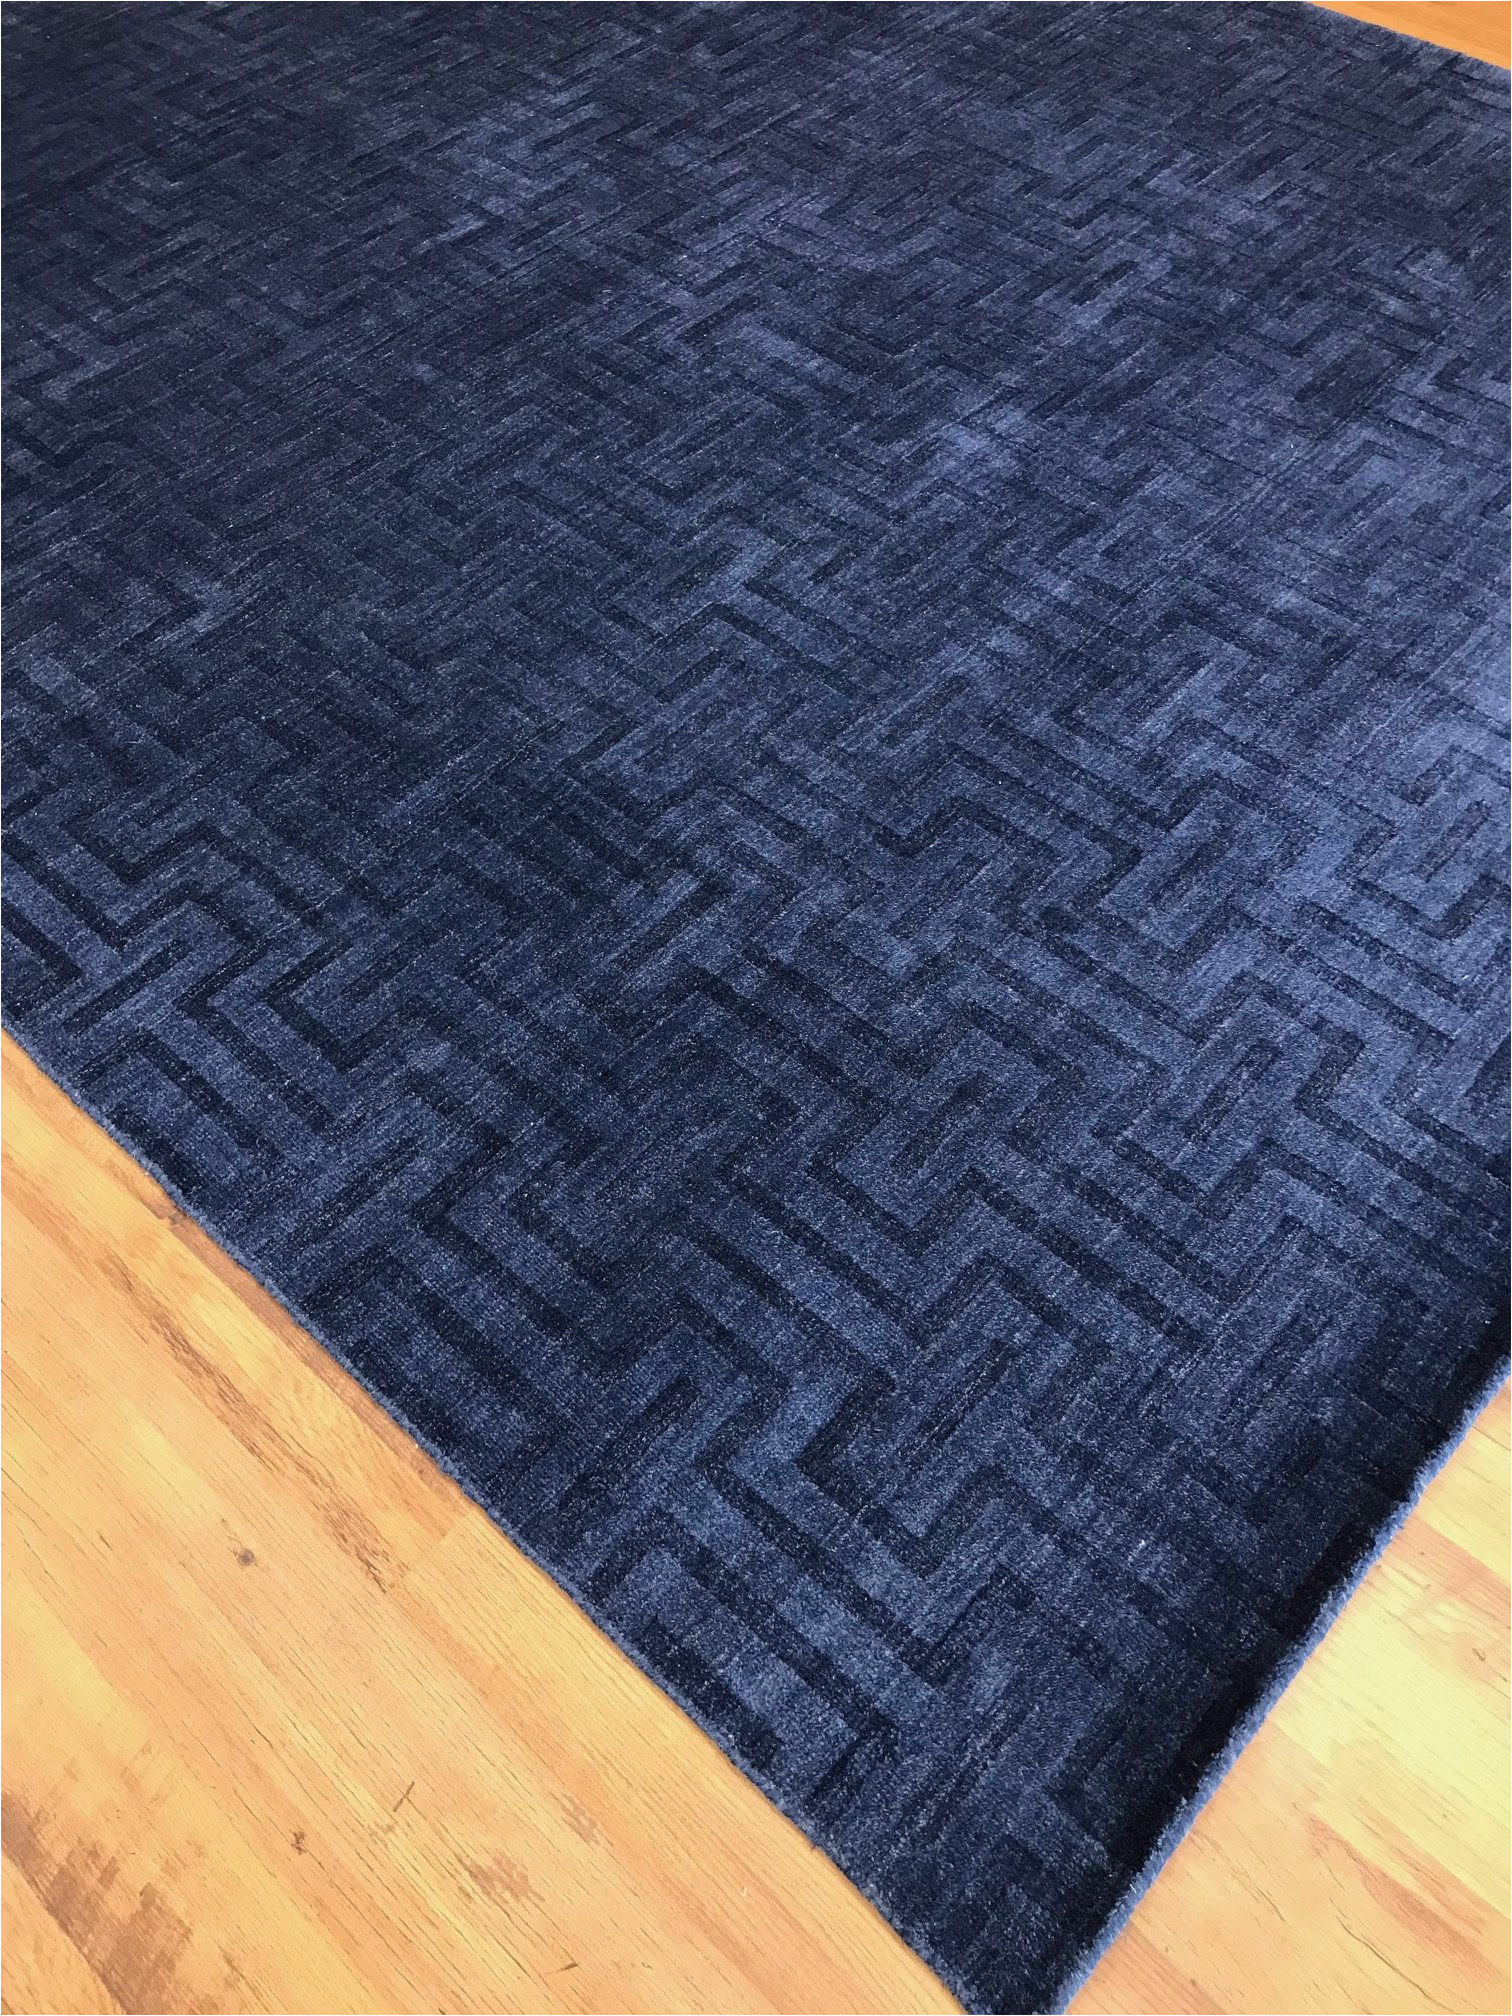 royal blue modern area rug 11114 rotated